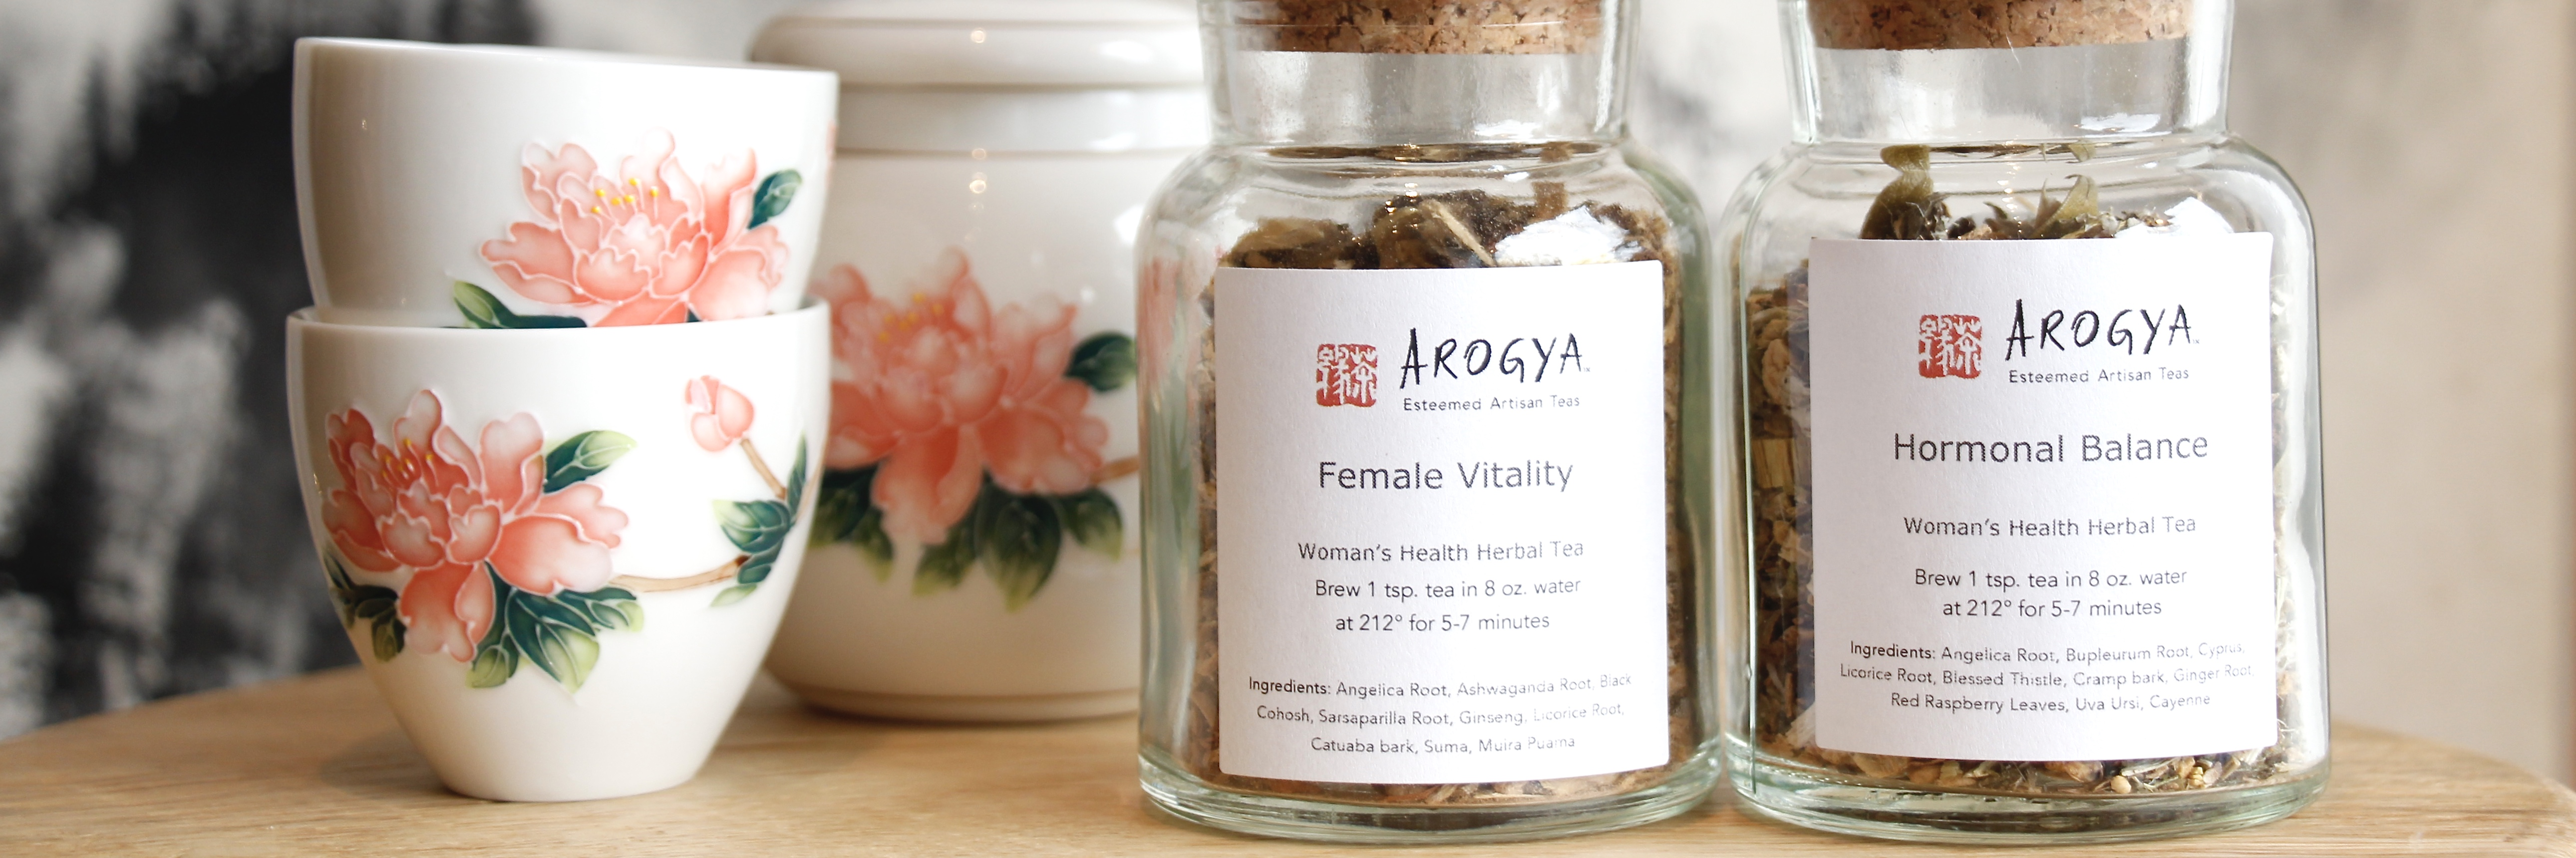 Herbal Tea for Women's Hormones